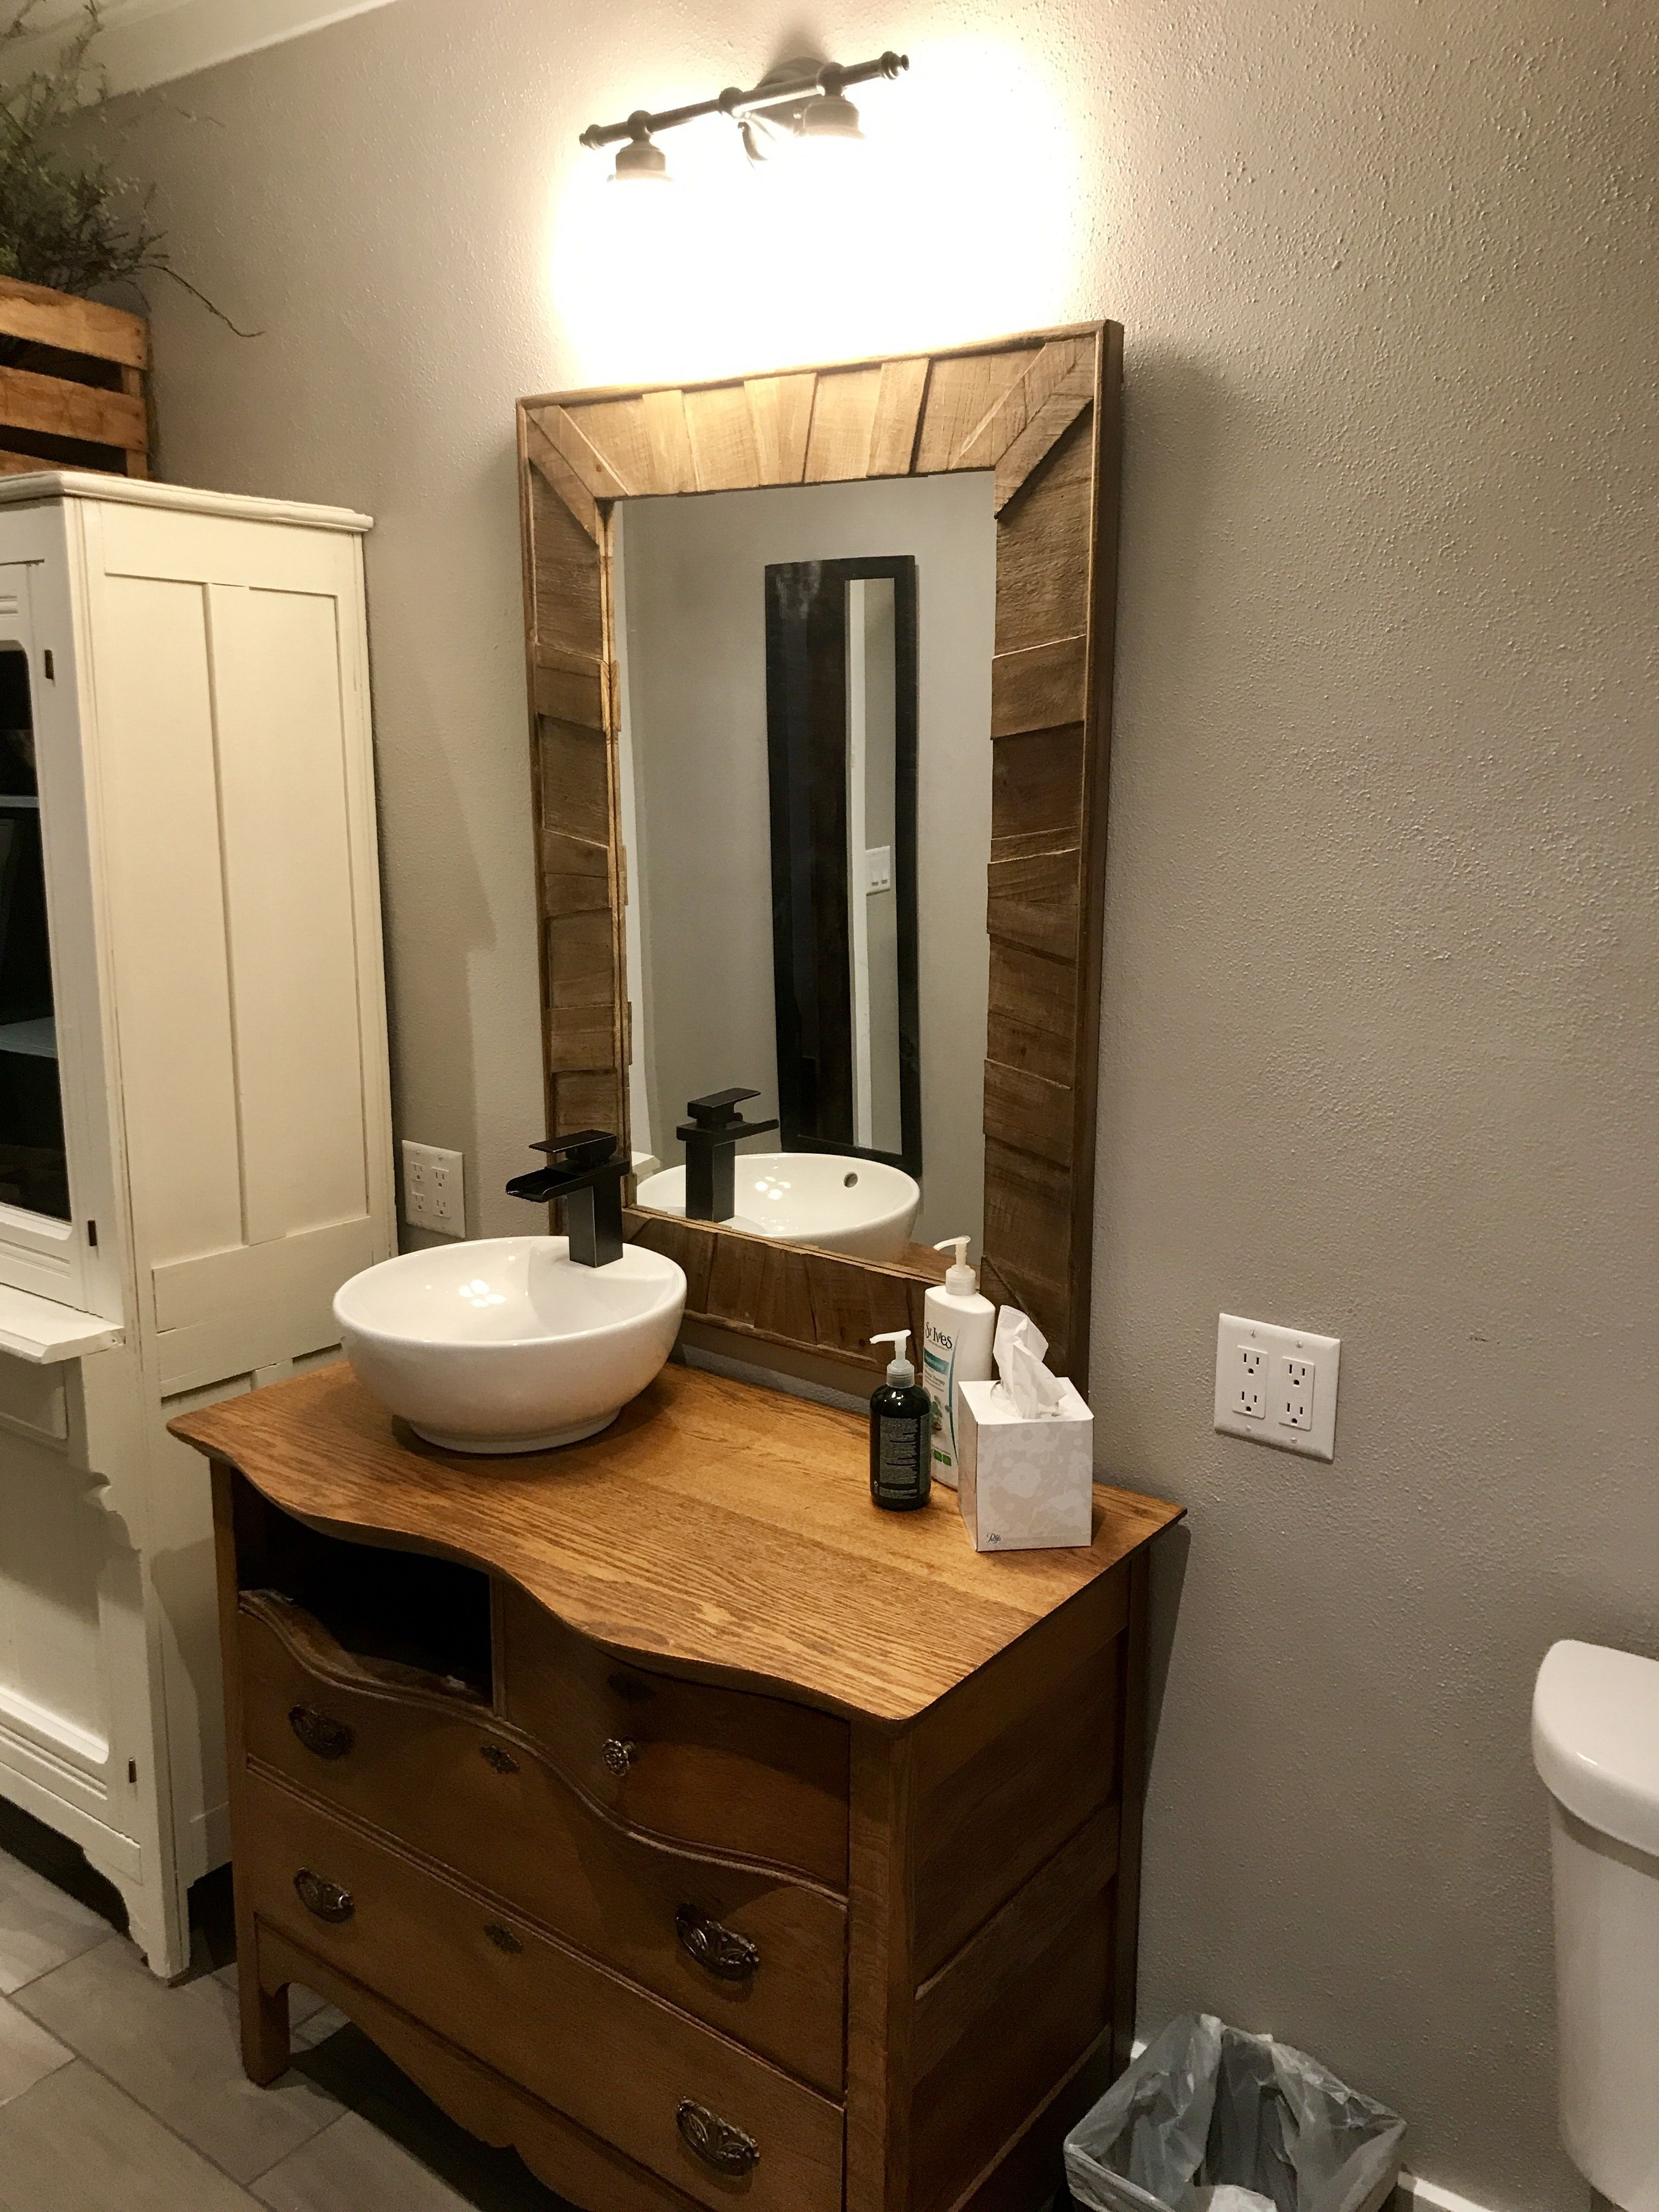 We Used An Old Dresser And A Vessel Sink To Create This One Of A